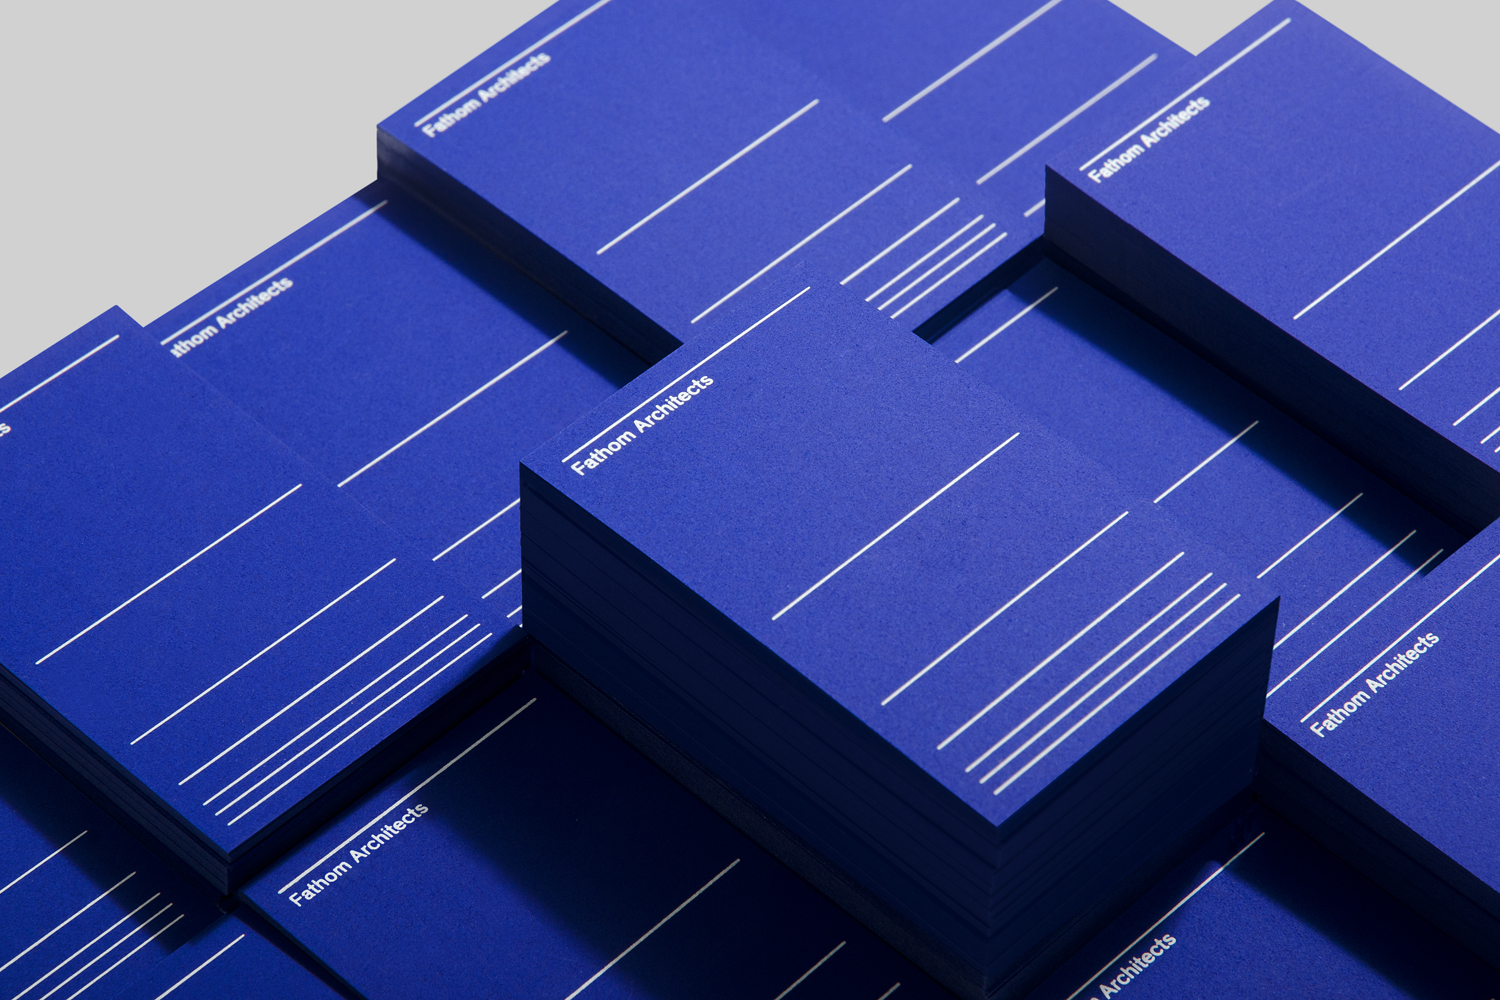 Branding for UK based Fathom Architects by dn&co.